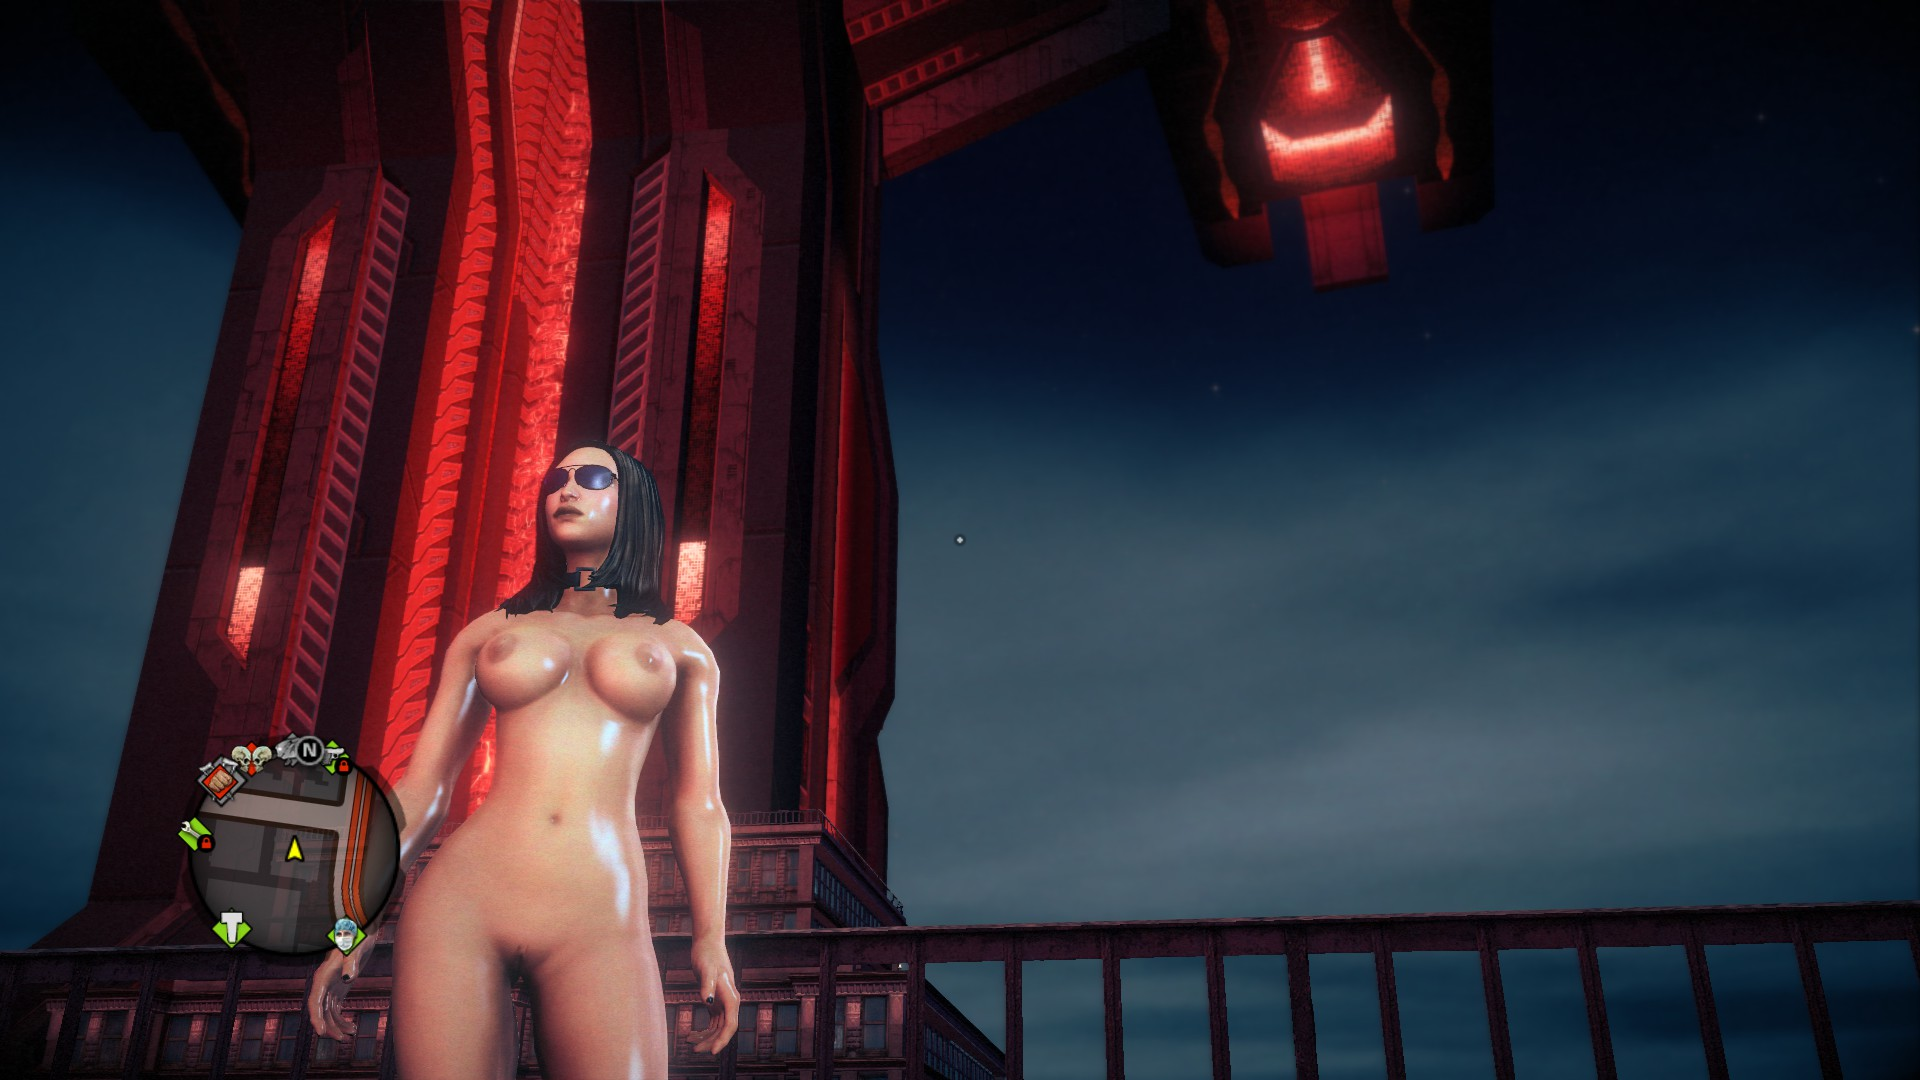 Saints row nude strippers sex gallery